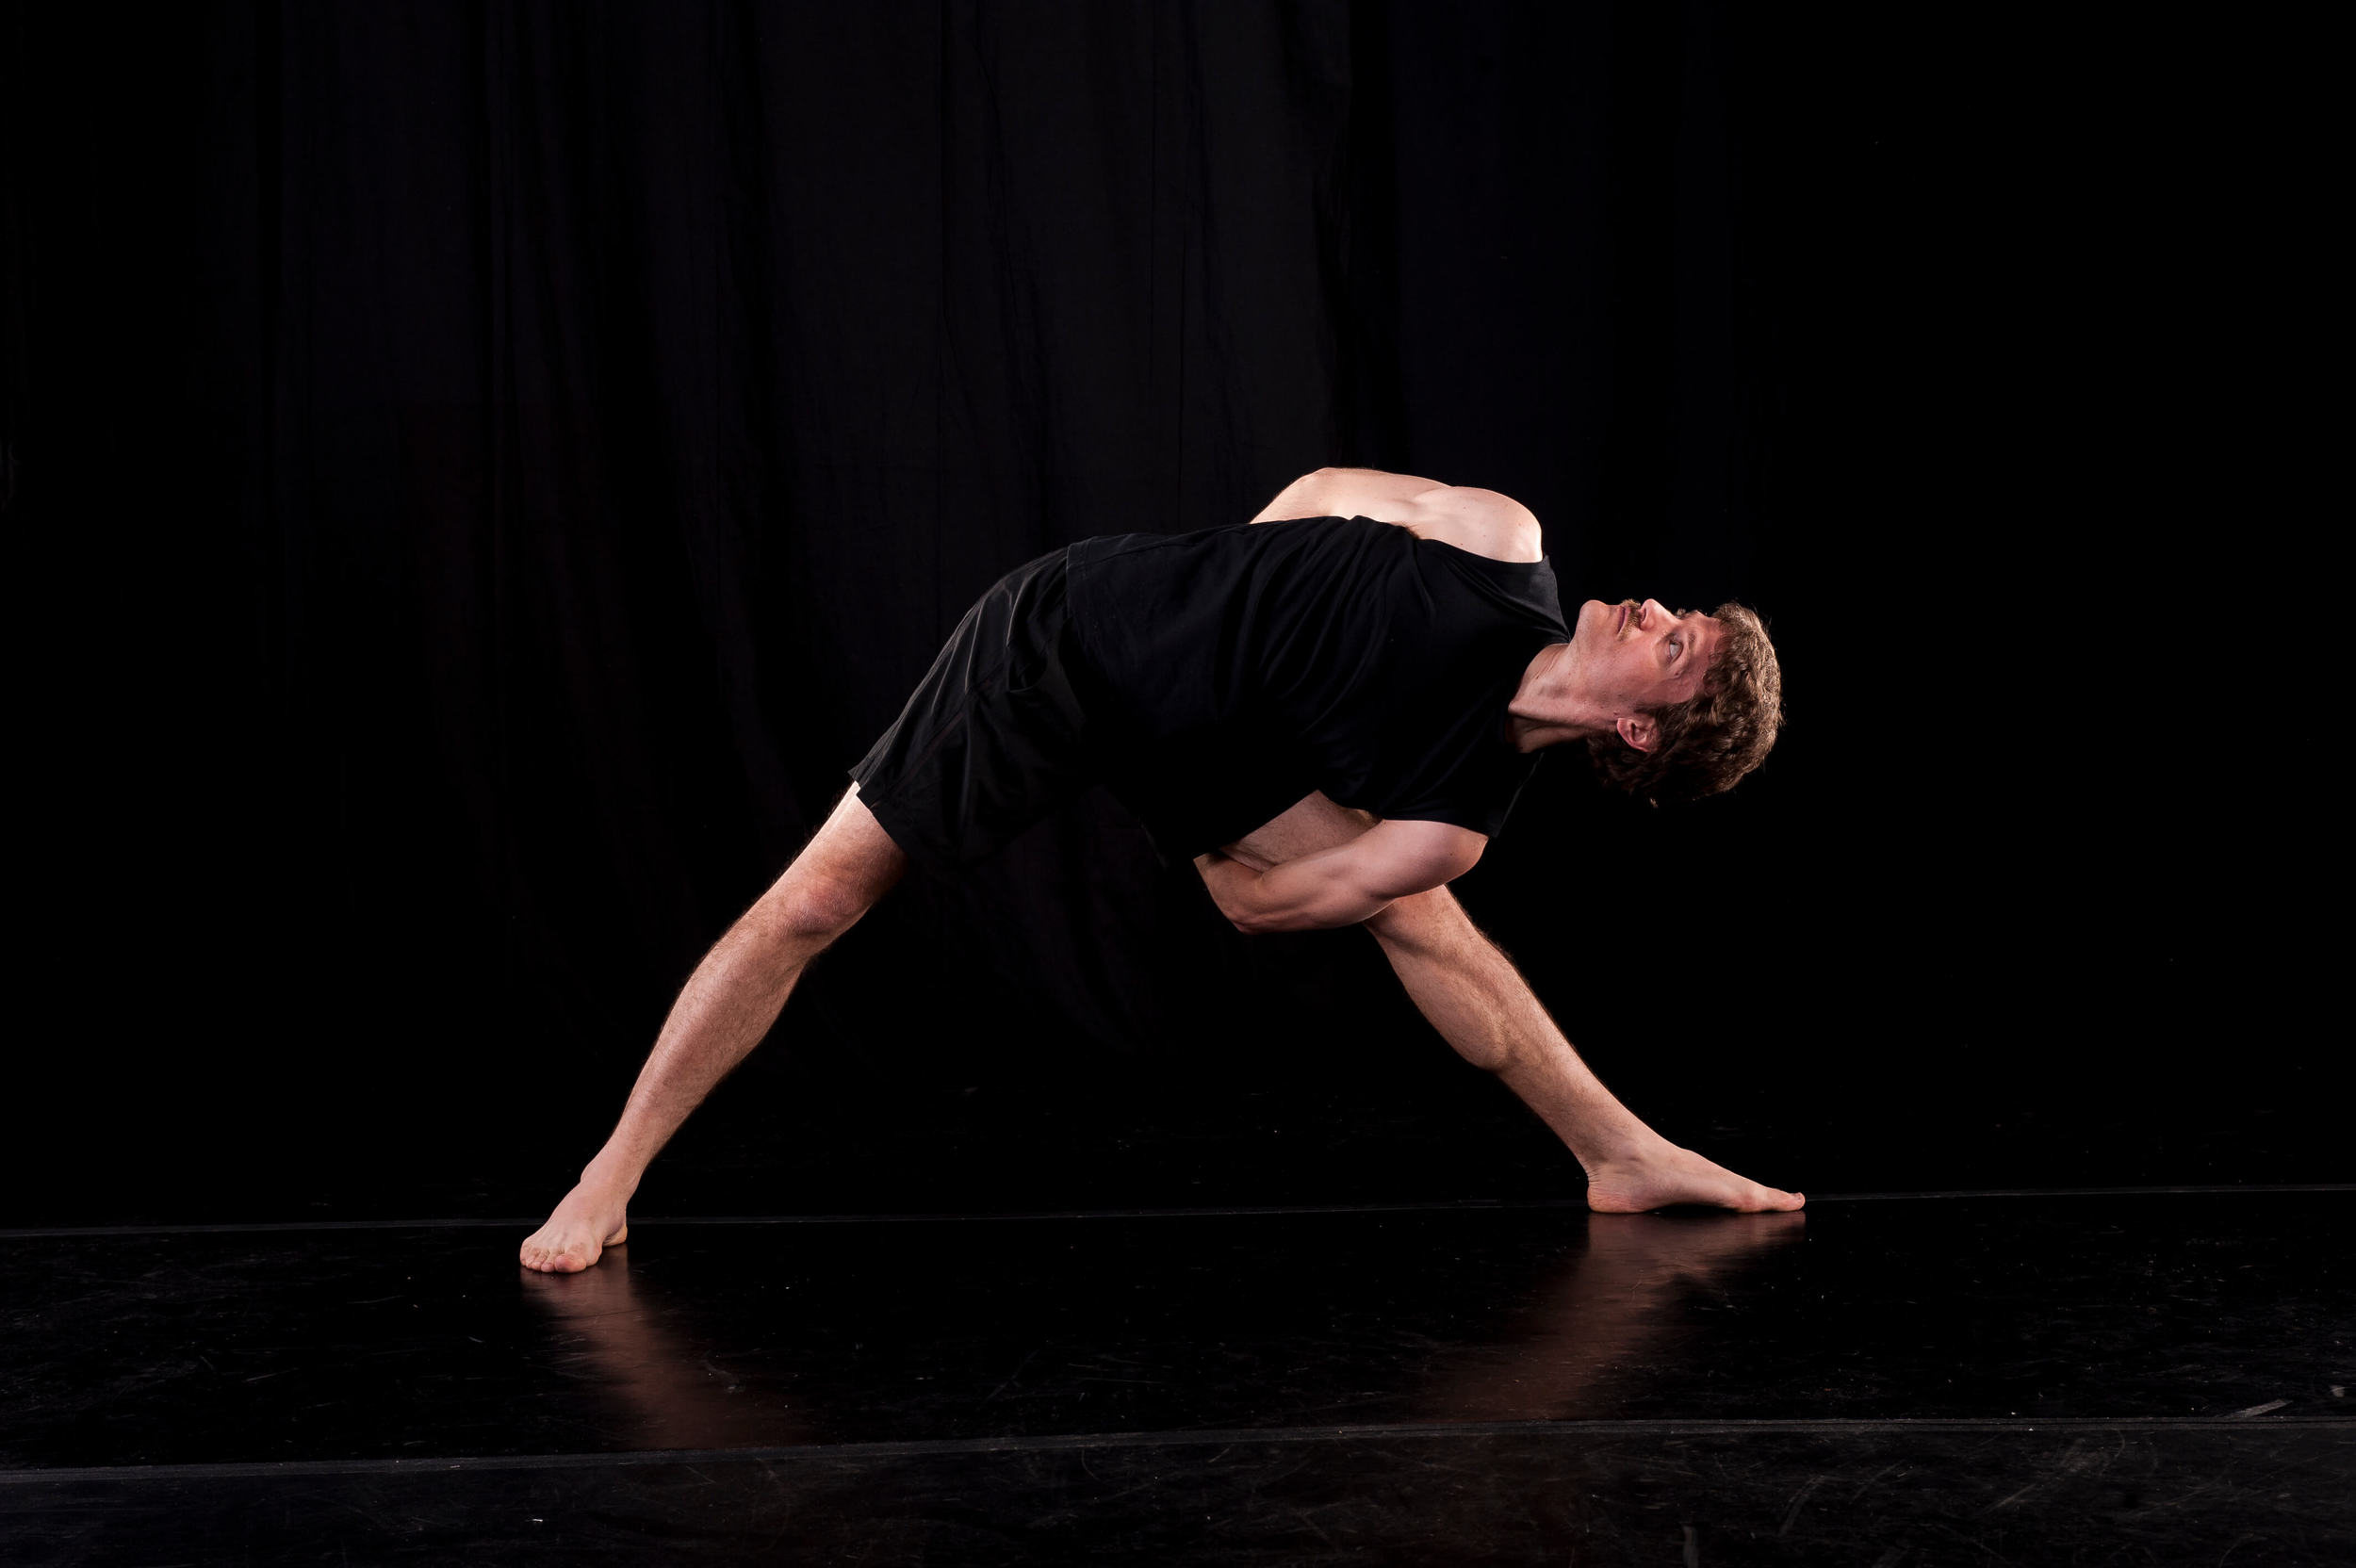 Stephen in triangle yoga posture